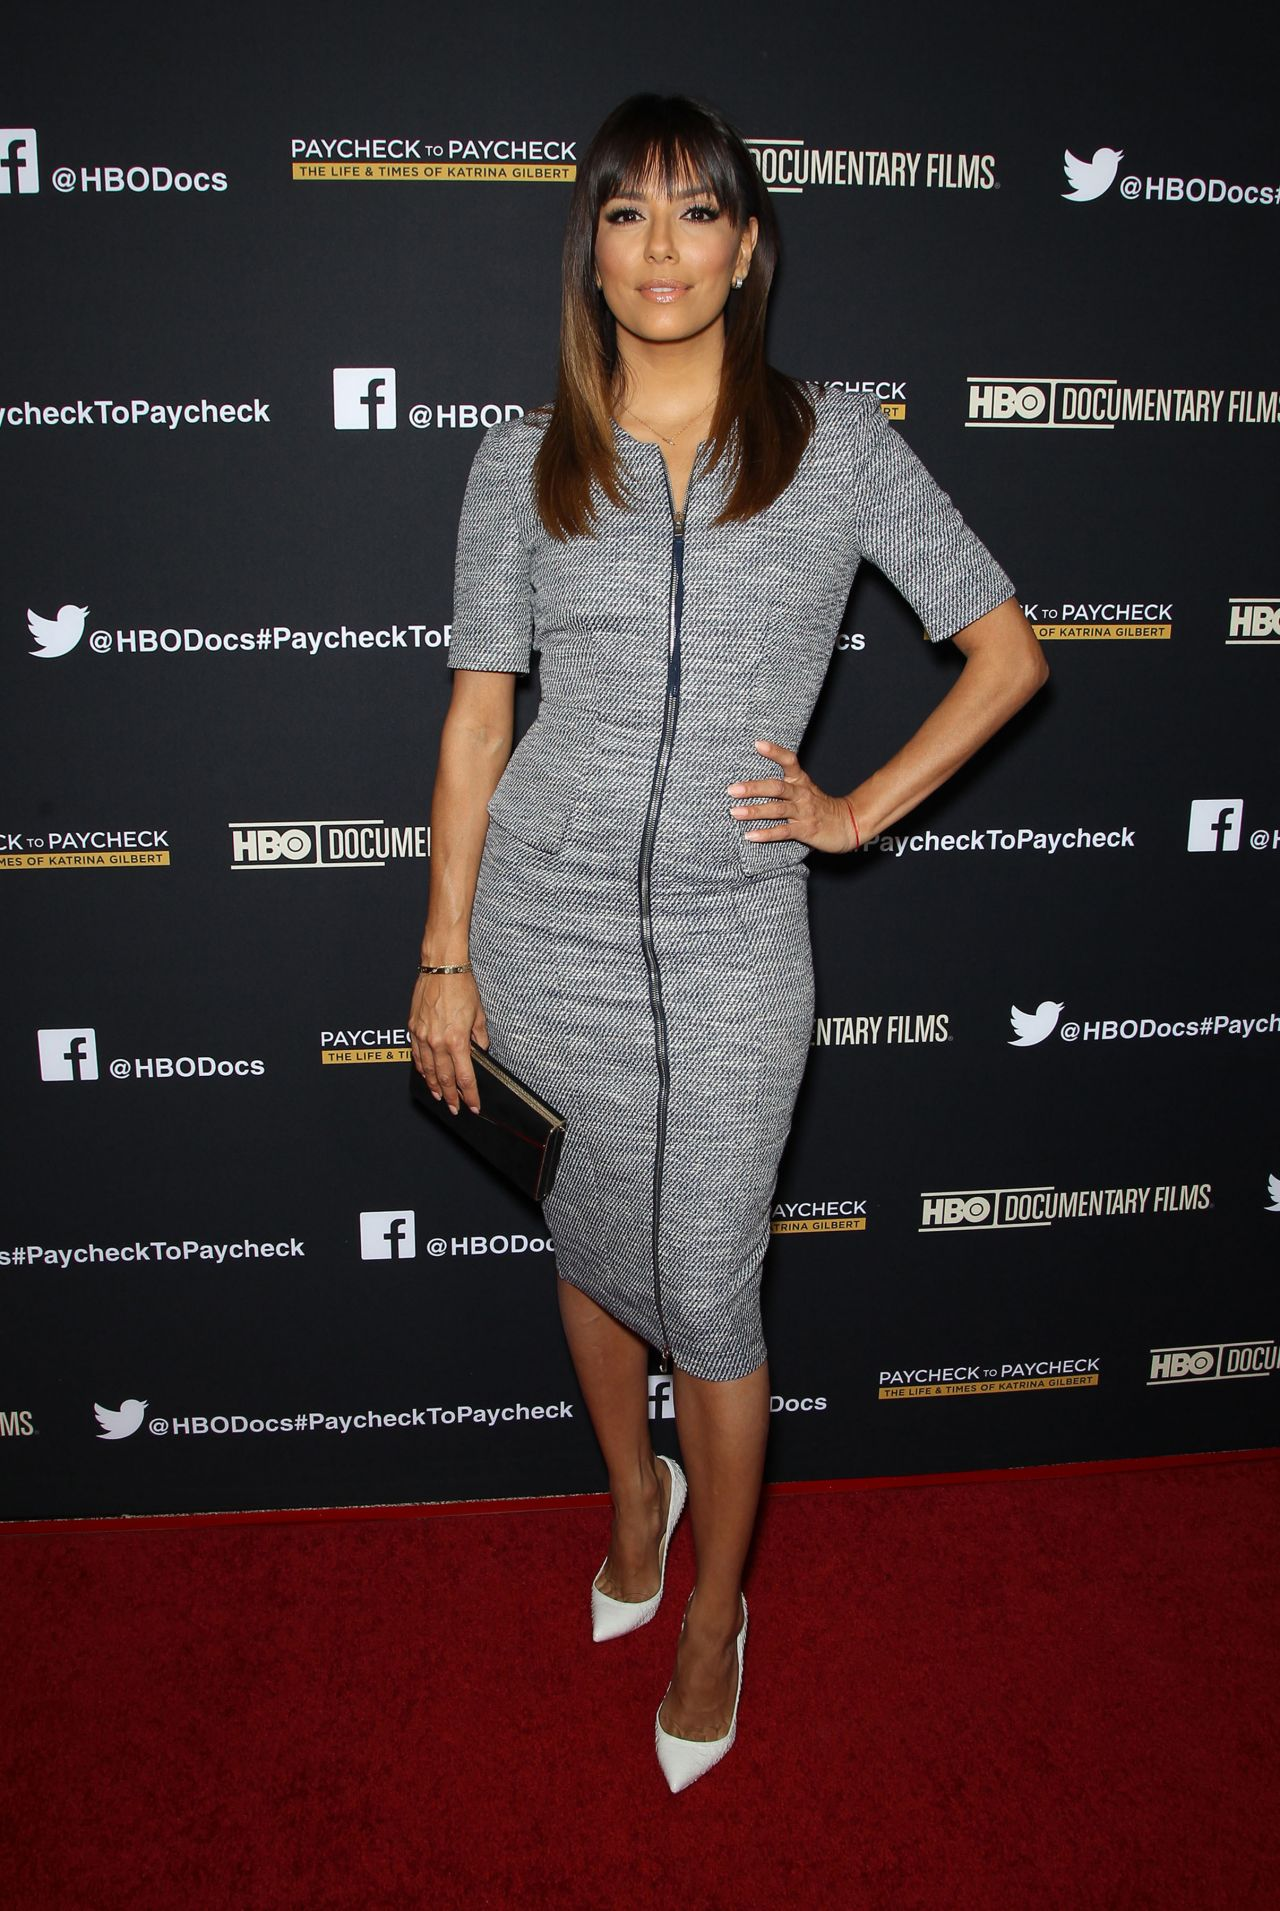 Eva Longoria in Philosophy Navy-And-White Tweed Dress -